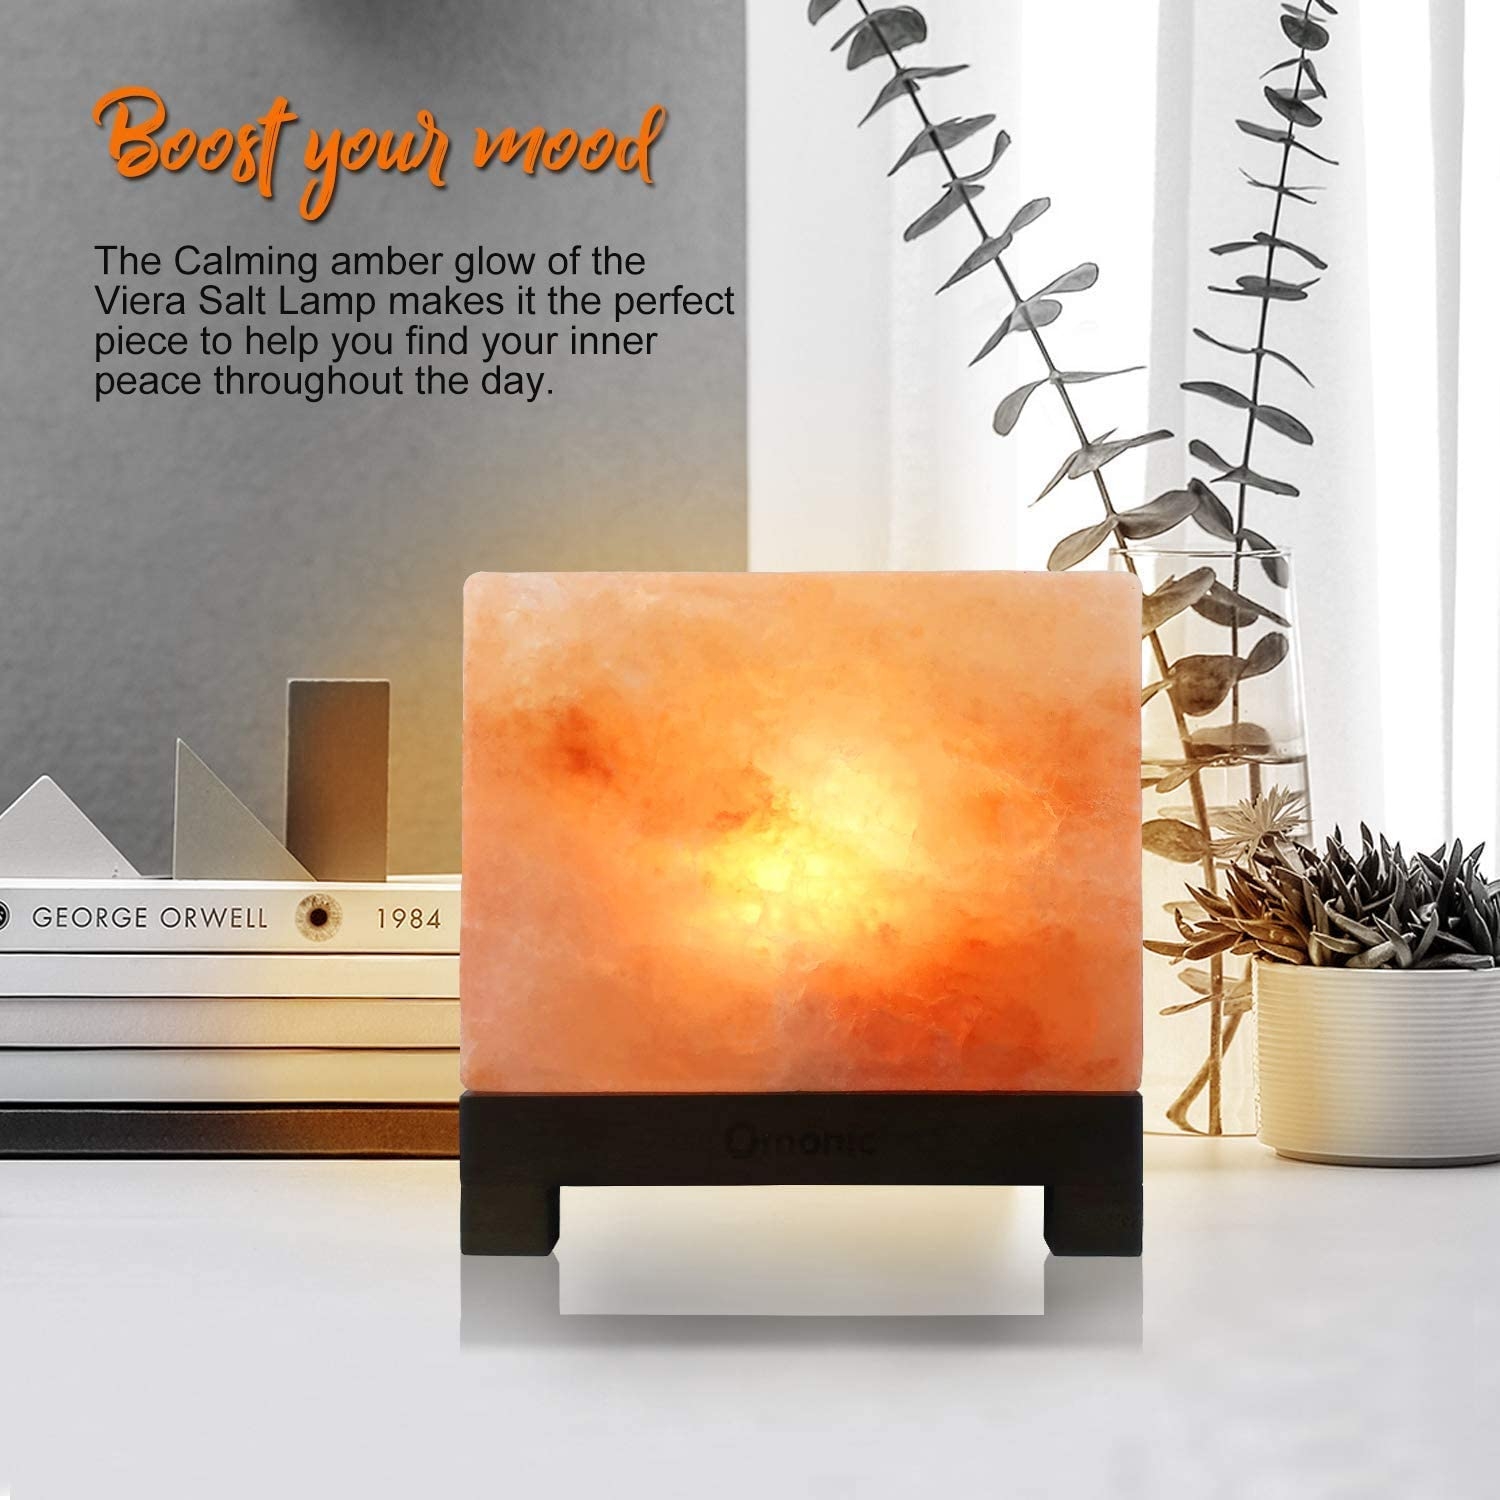 100/% Authentic Rare Cube Himalayan Salt Lamp; Hand-Carved Modern Rectangle in Pink Crystal Rock Salt from The Himalayan Mountains; Footed Wood Base UL-Listed Dimmer Cord Extra Bulb; 11.5 lbs